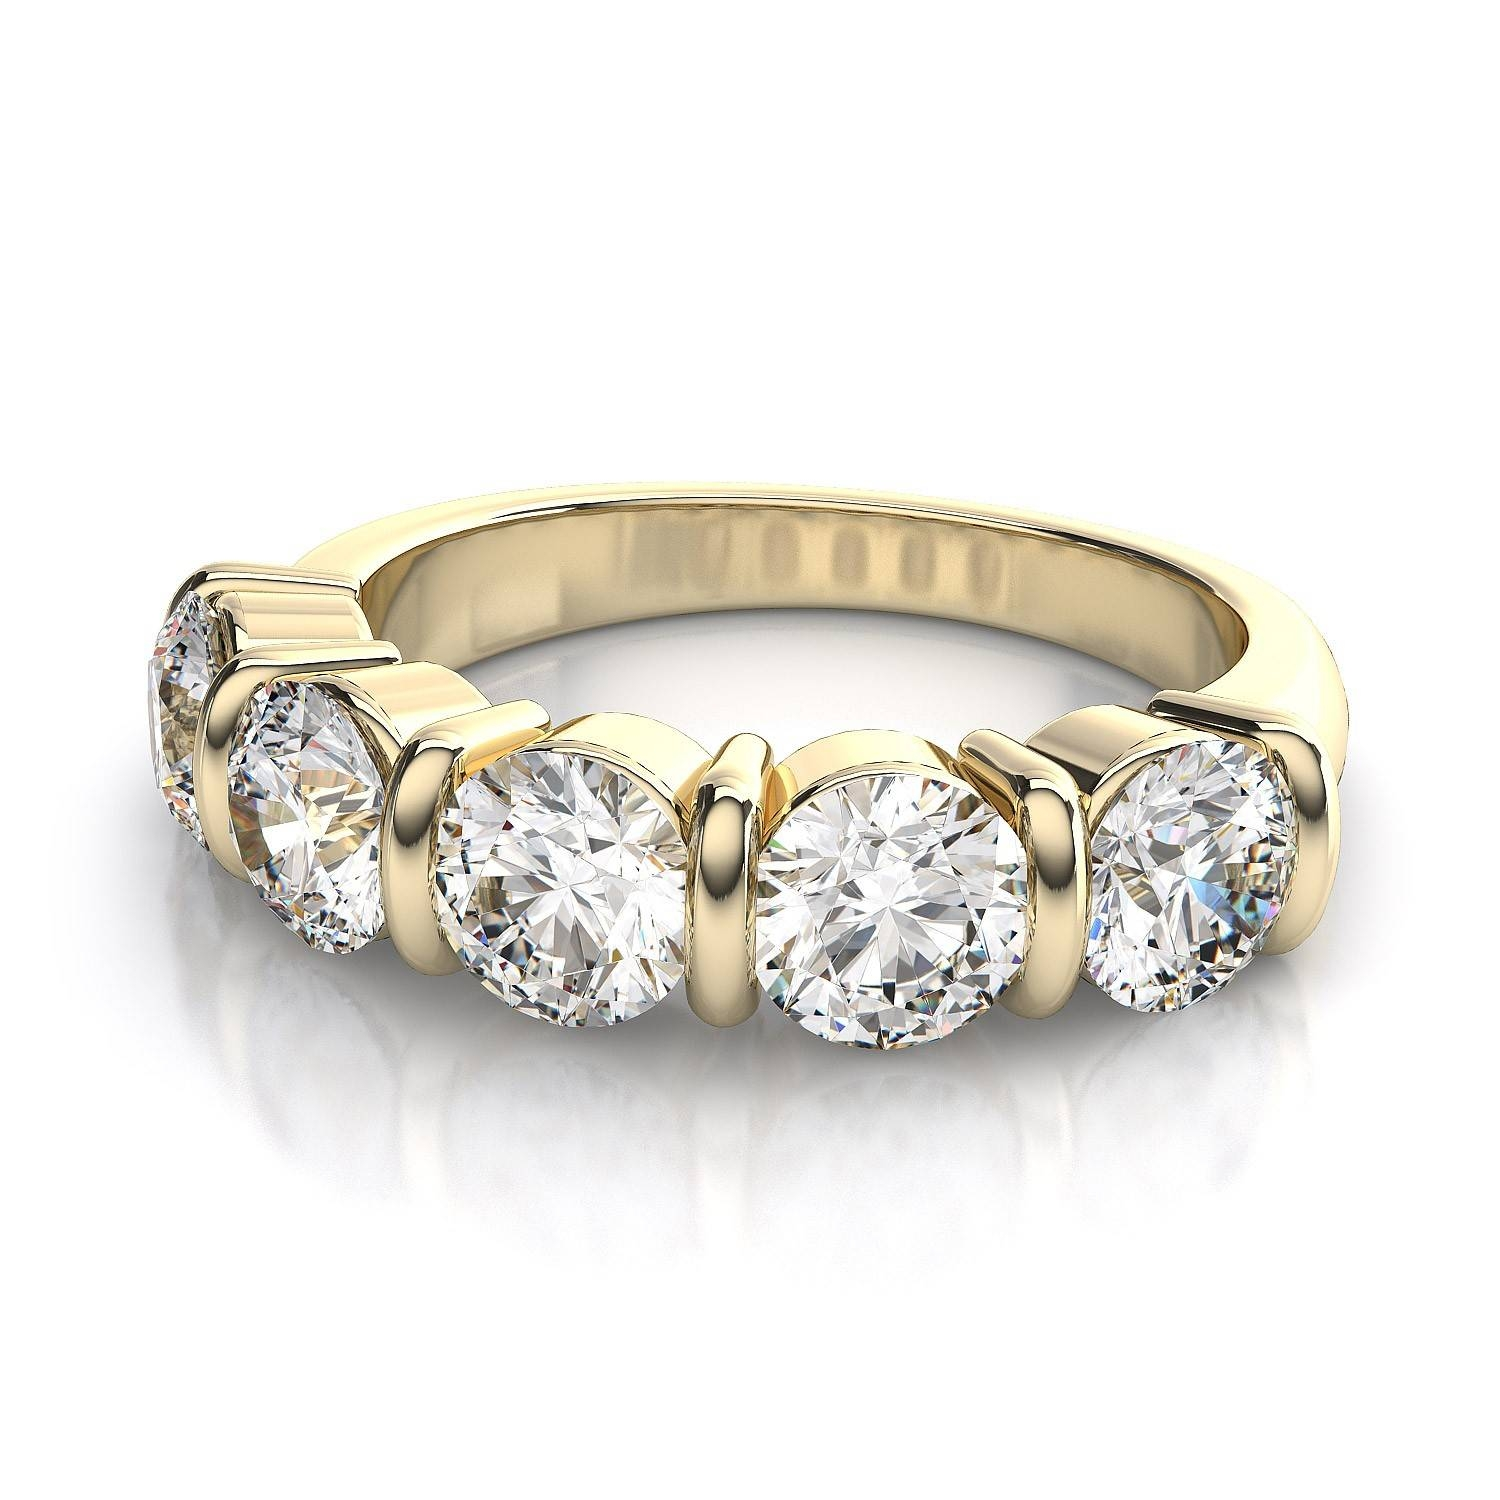 chip diamond studio ask new engagement ring to my how a story digital main hate rings for weddings